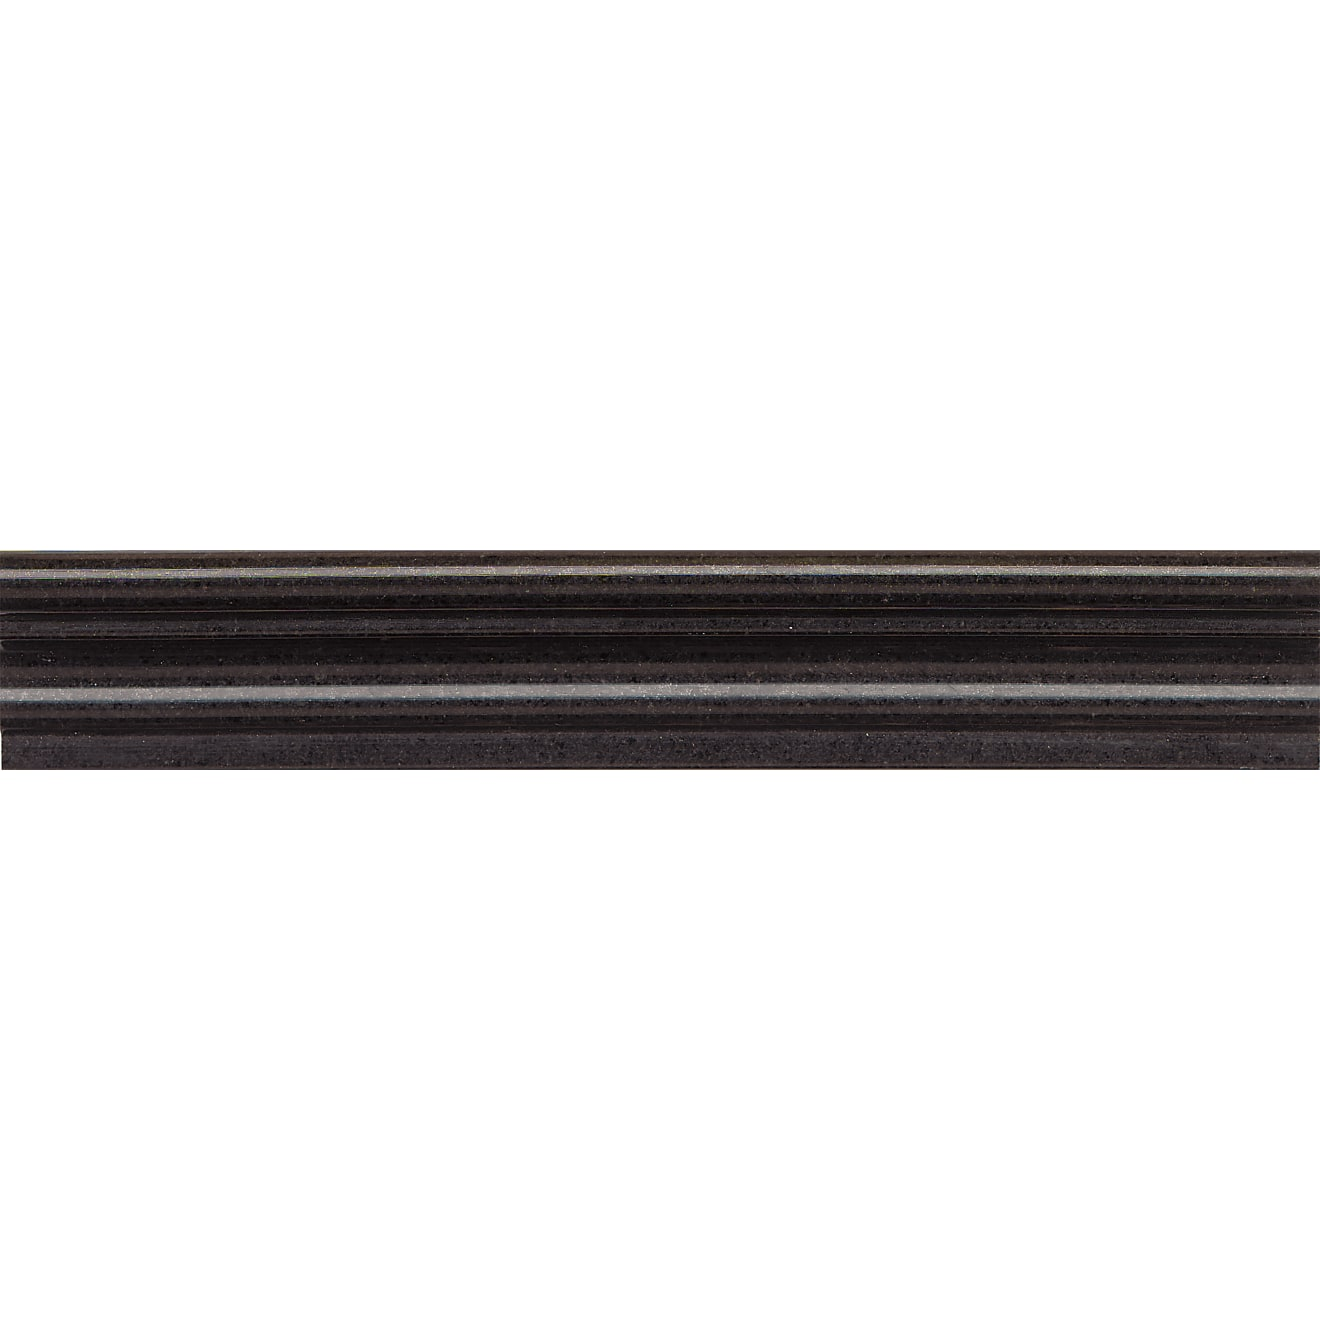 Absolute Black 2.00 x 12.00 Trim